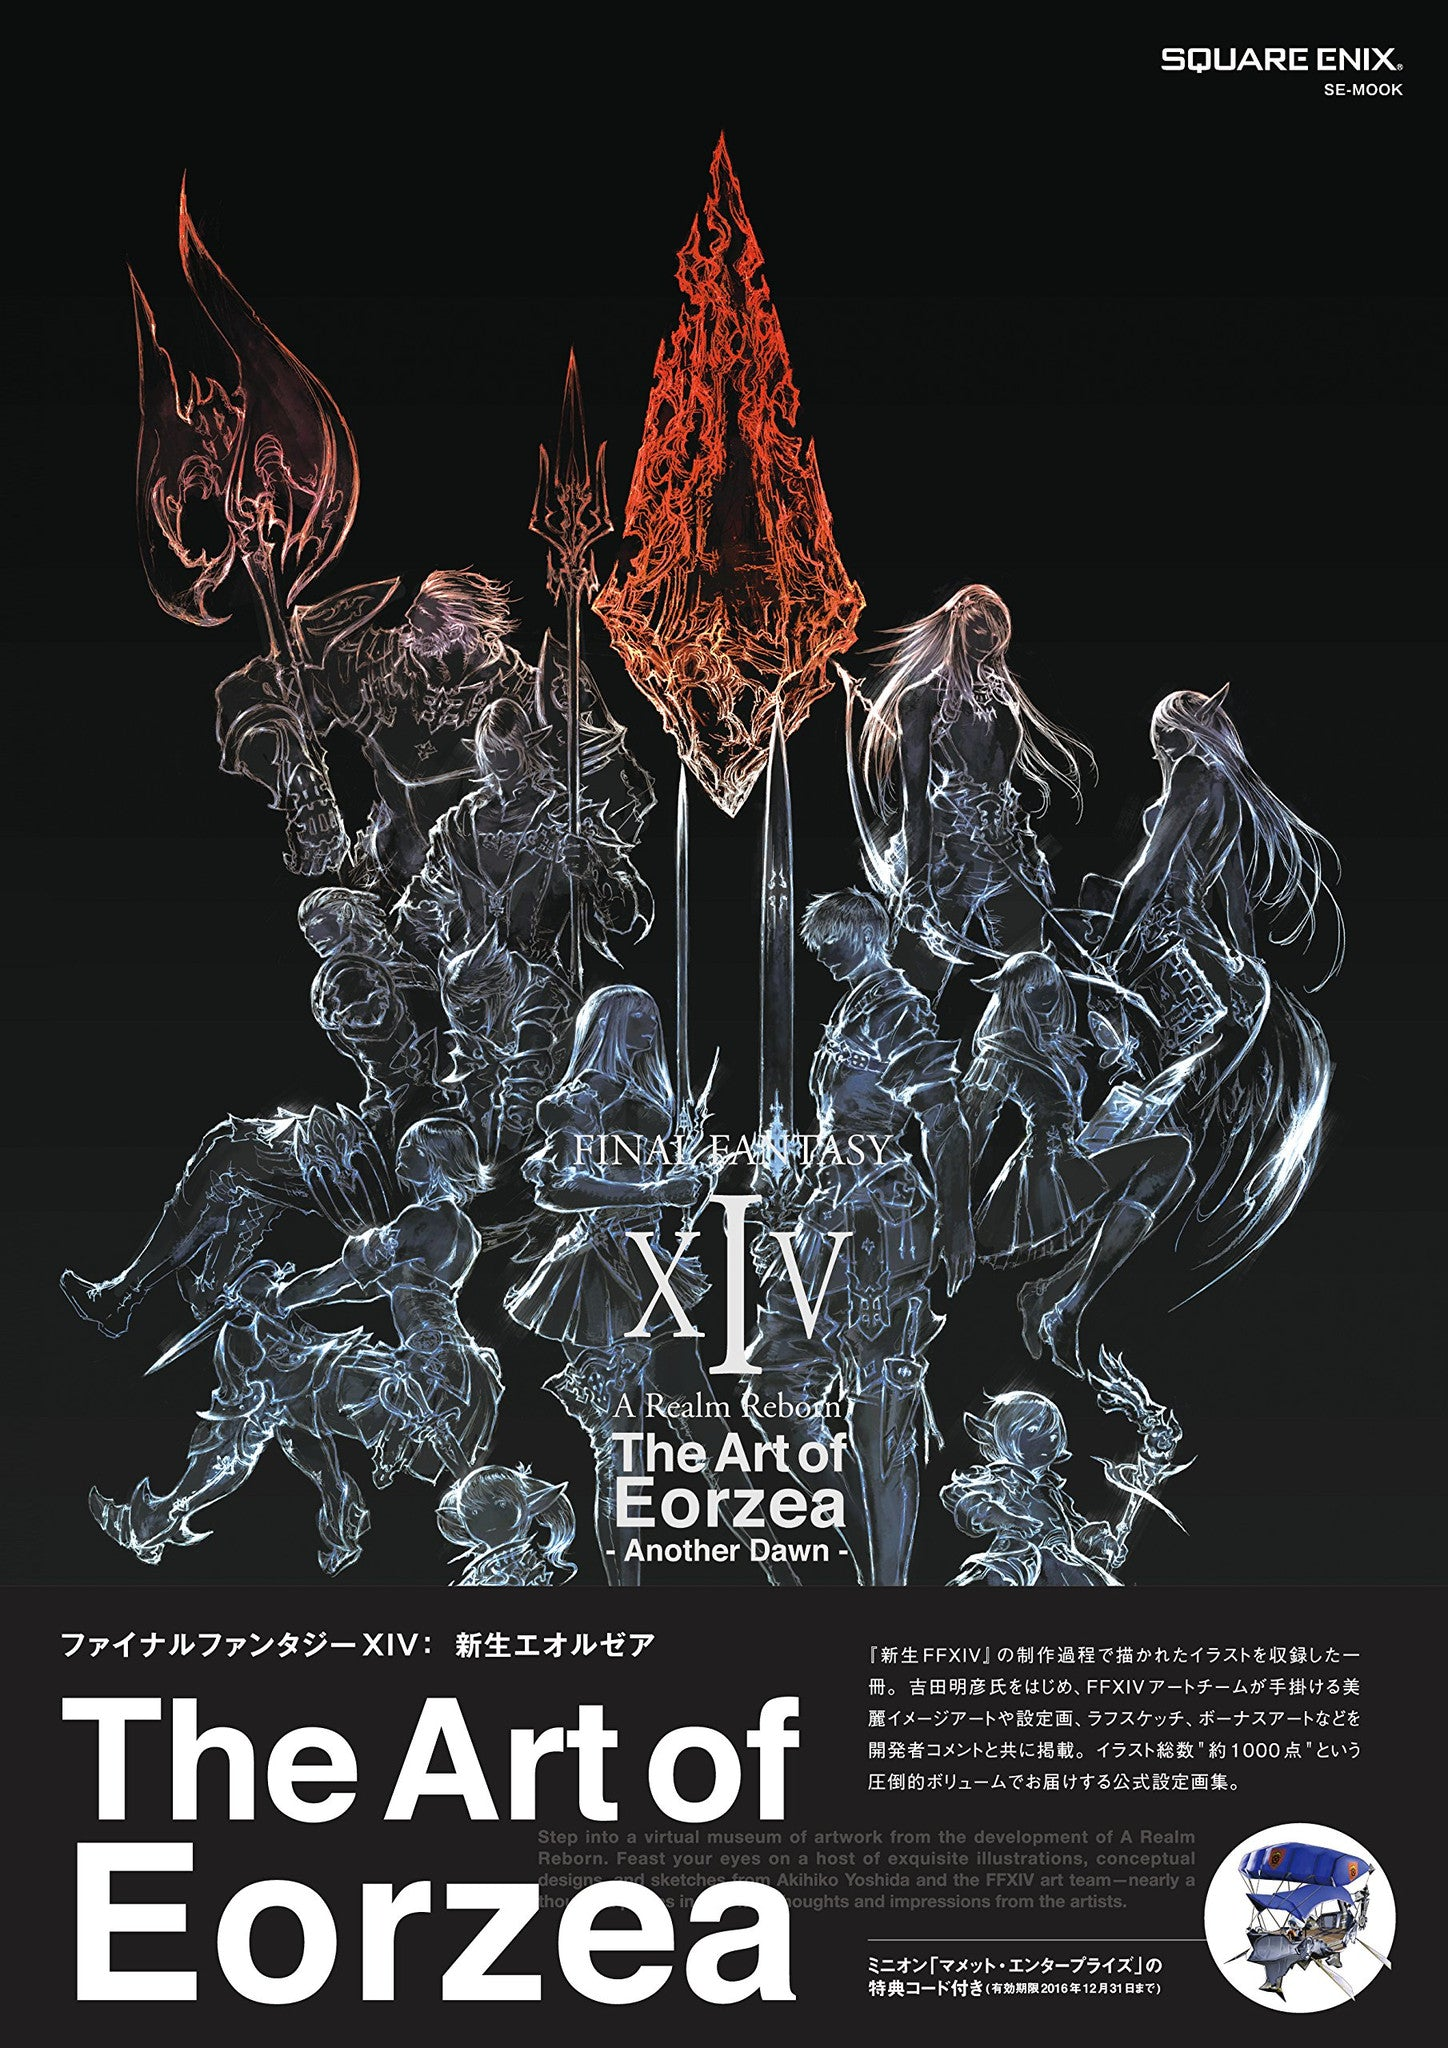 FINAL FANTASY XIV: A Realm Reborn The Art of Eorzea - Another Dawn [e-Store Edition]